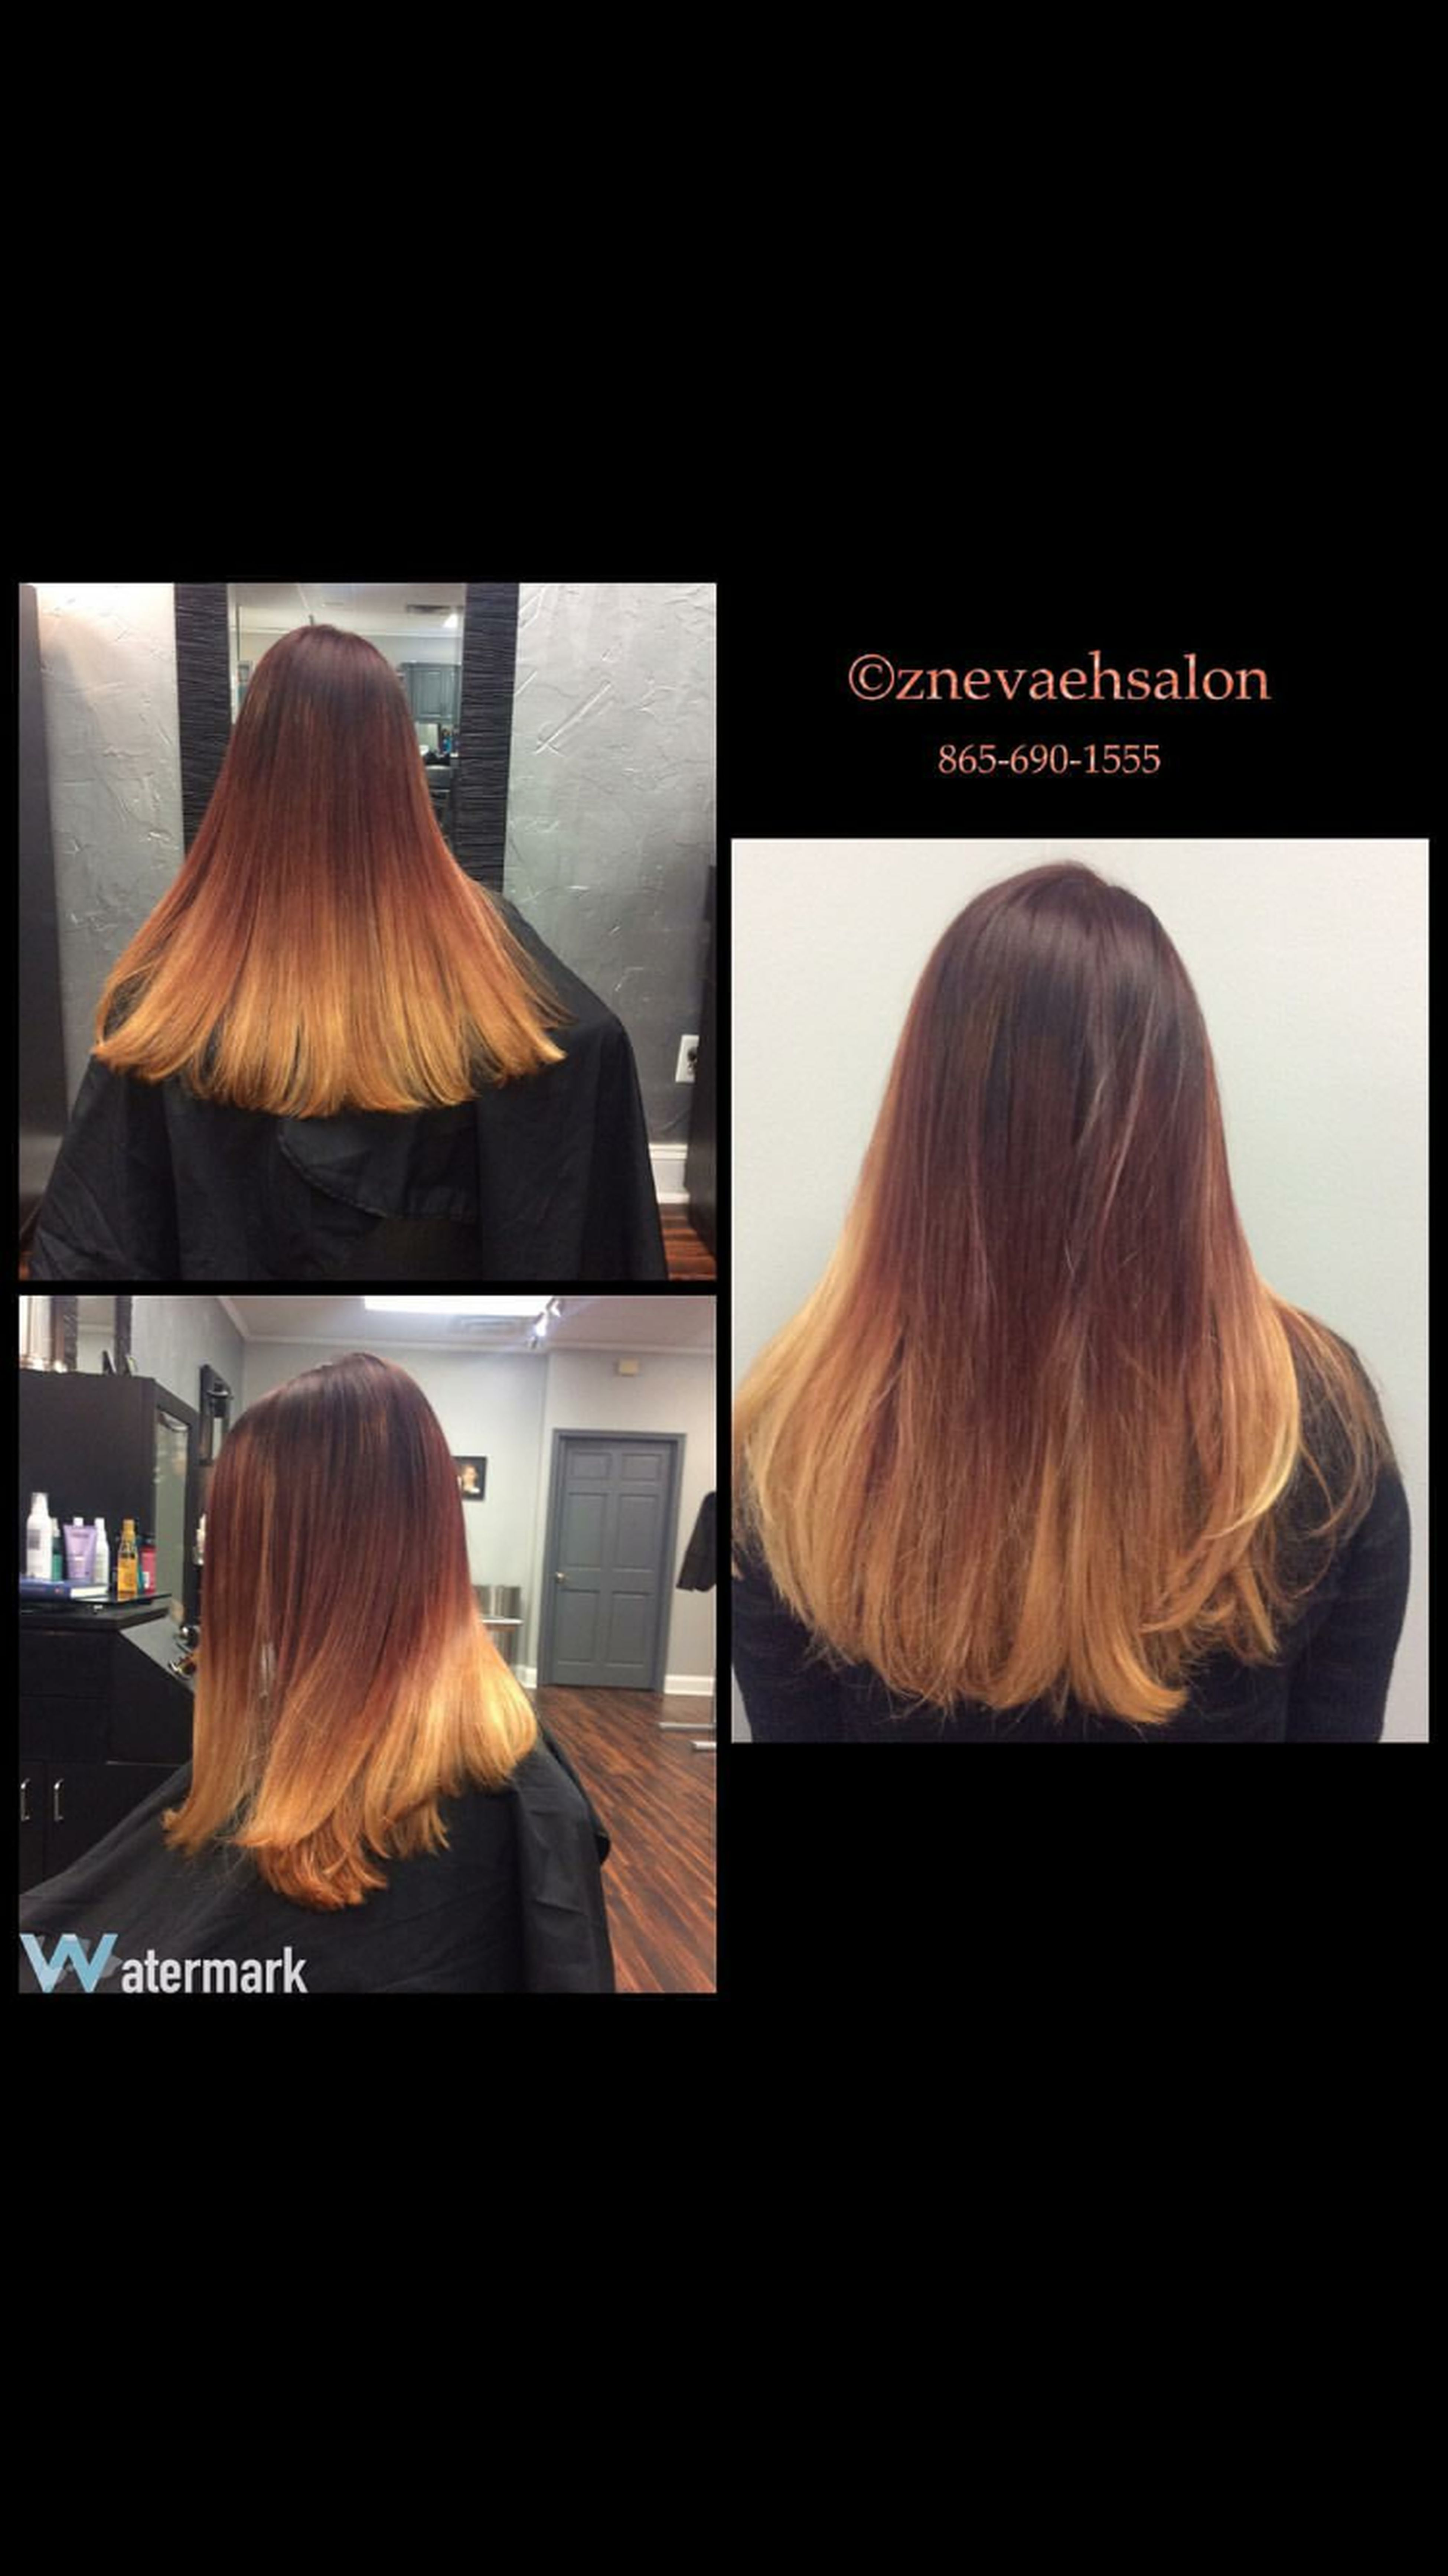 Artistic Color @znevaehsalon @lorealprous Check This Out Knoxville Salon Pro Fiber Ecaille Haircolor Color Specialist Highligting And Contouring Eye4photography # Photooftheday L'Oreal Professionnel Z Nevaeh Salon Lorealprofessionnelsalon Hairtrends Fire Hair Color